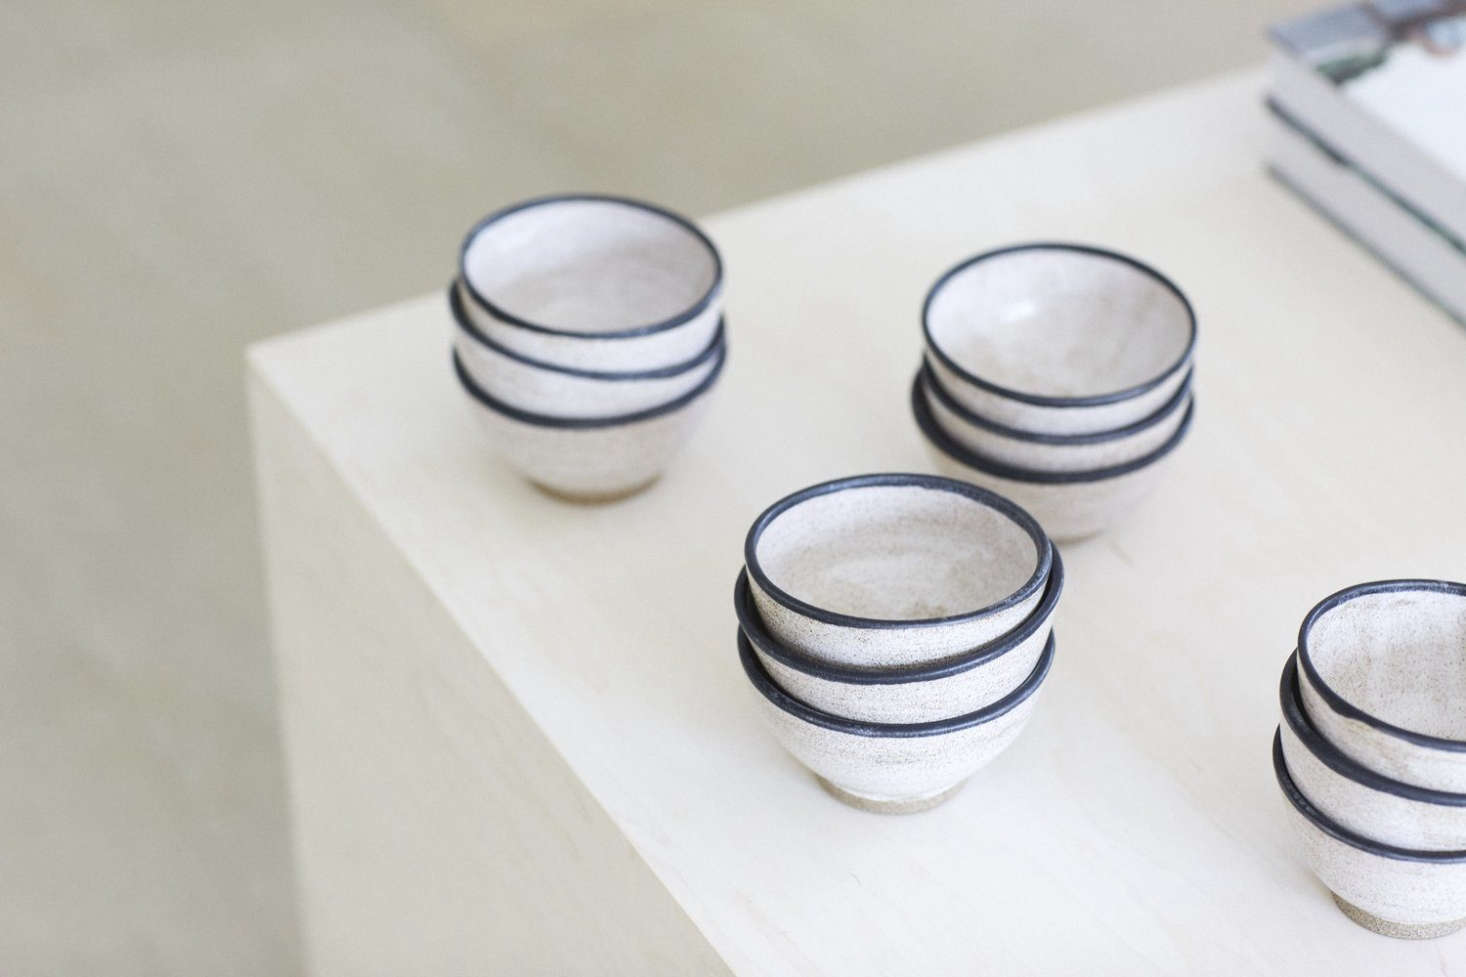 Handmade Enso Rice Bowls by Klaycat Porcelain are $22 each.